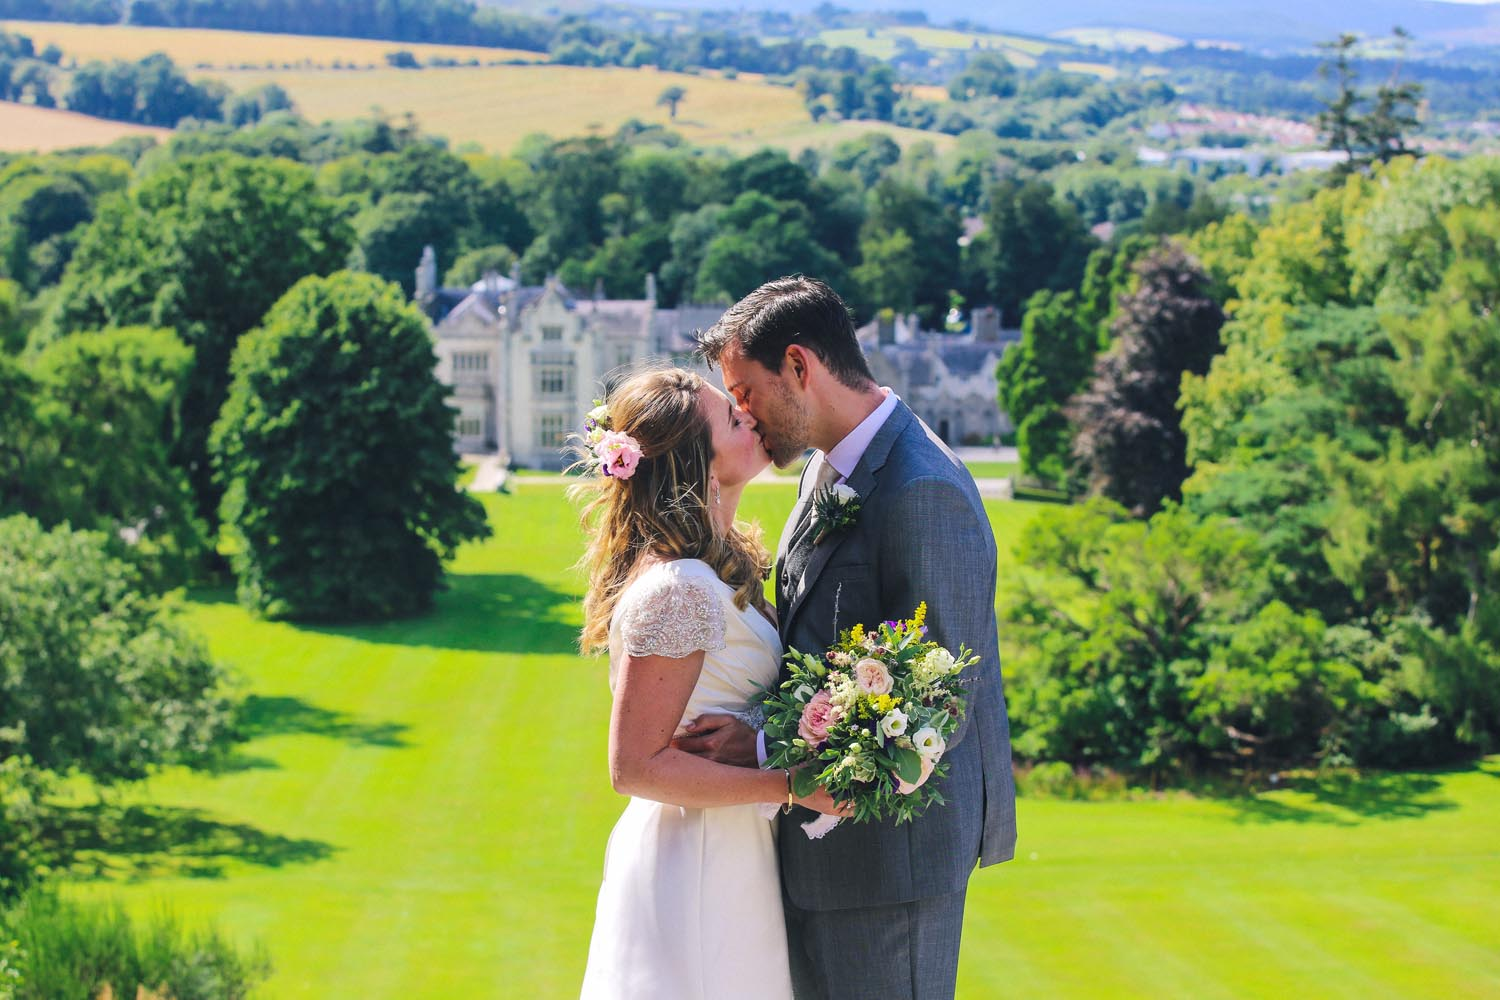 Bride and Groom kissing on their wedding day in Killruddery gardens